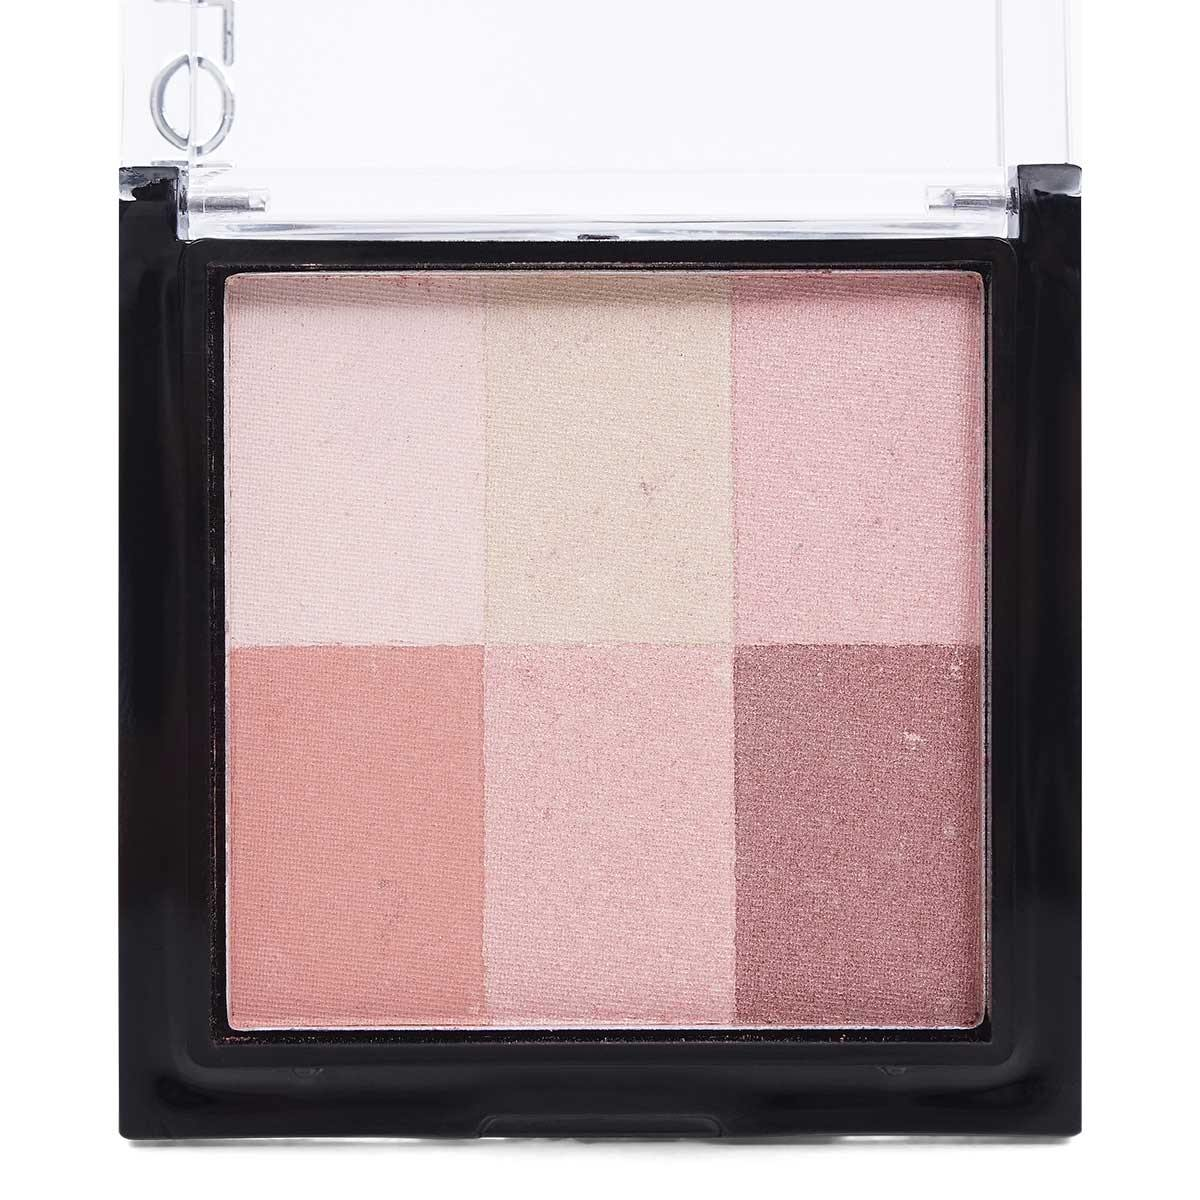 KLEANCOLOR Nude Glow-Luminous Finishing Powder (BH2492) - Display of 24 units